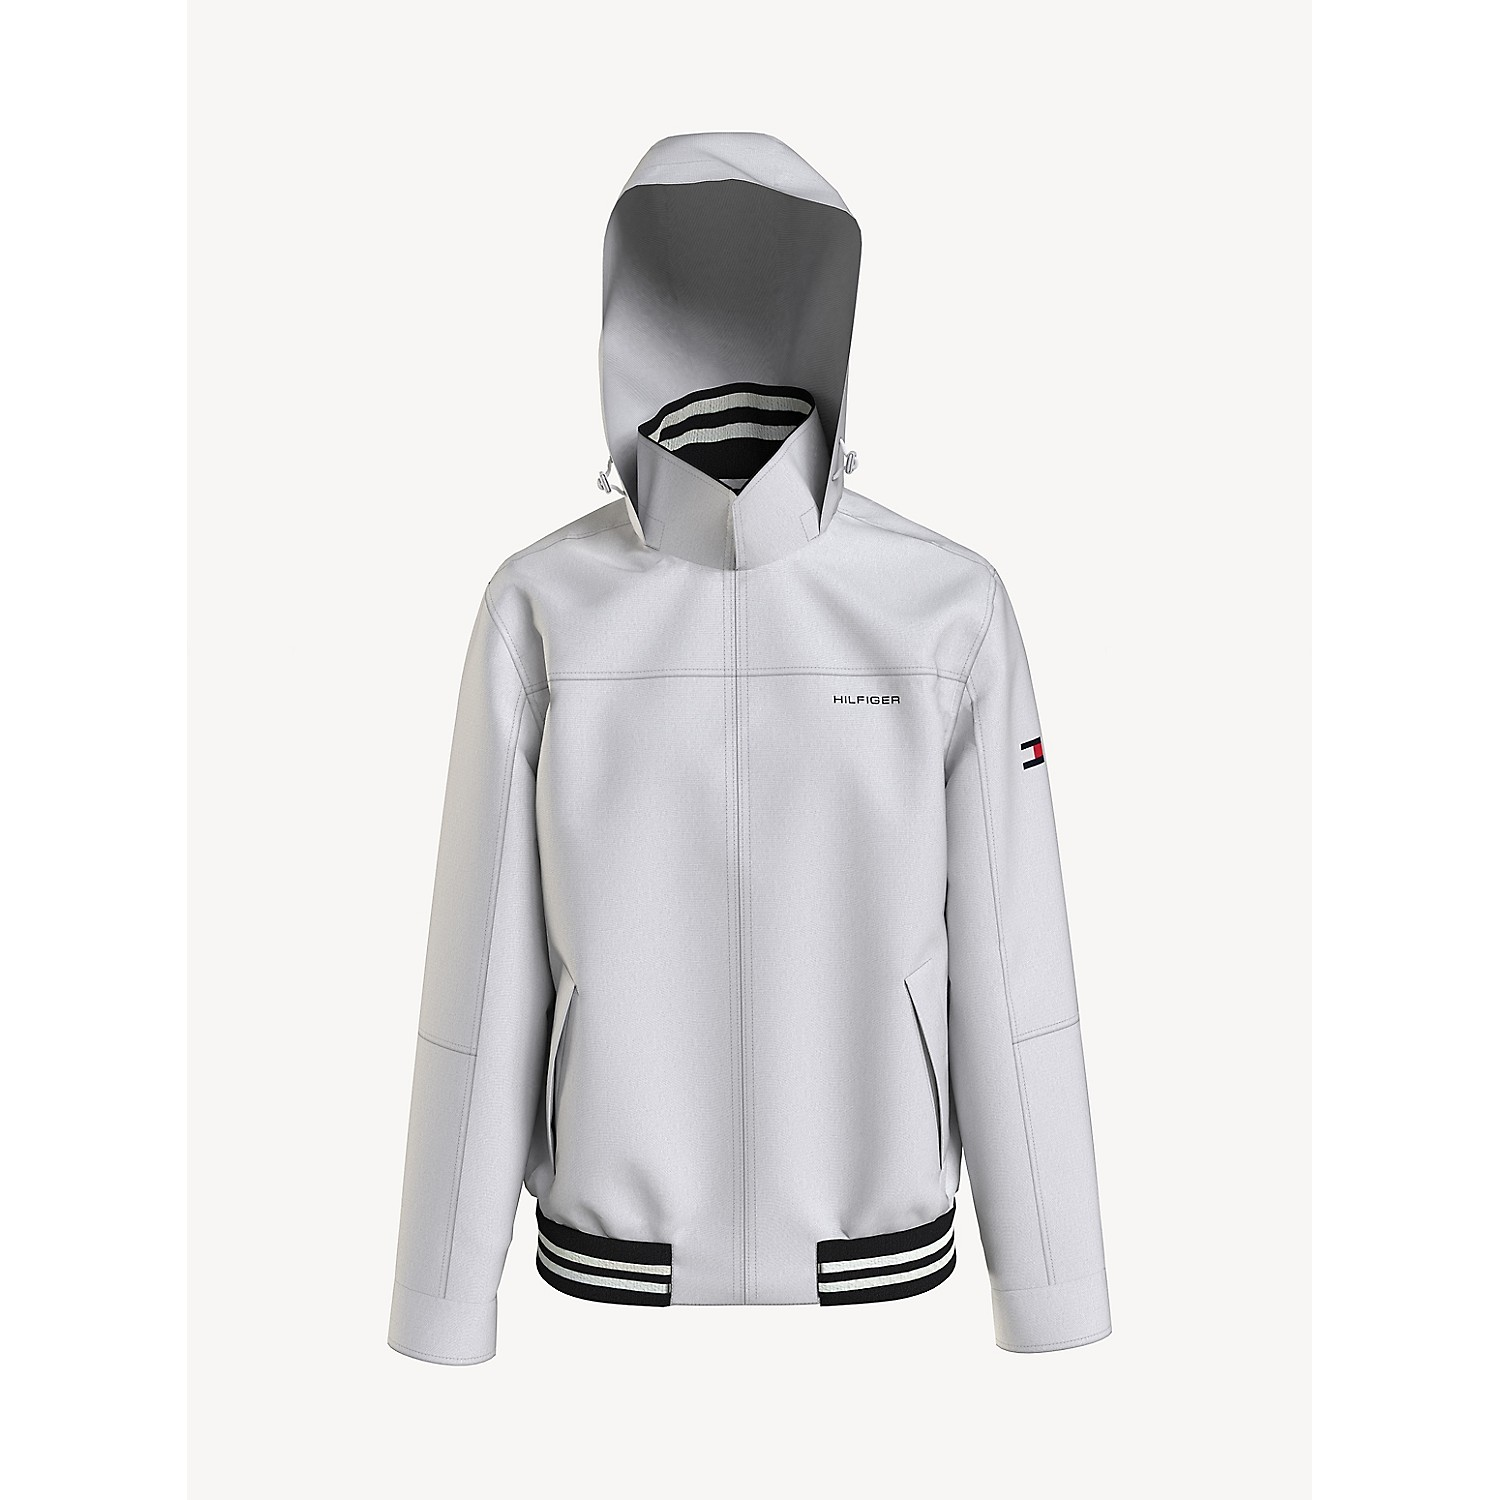 TOMMY HILFIGER Essential Regatta Jacket